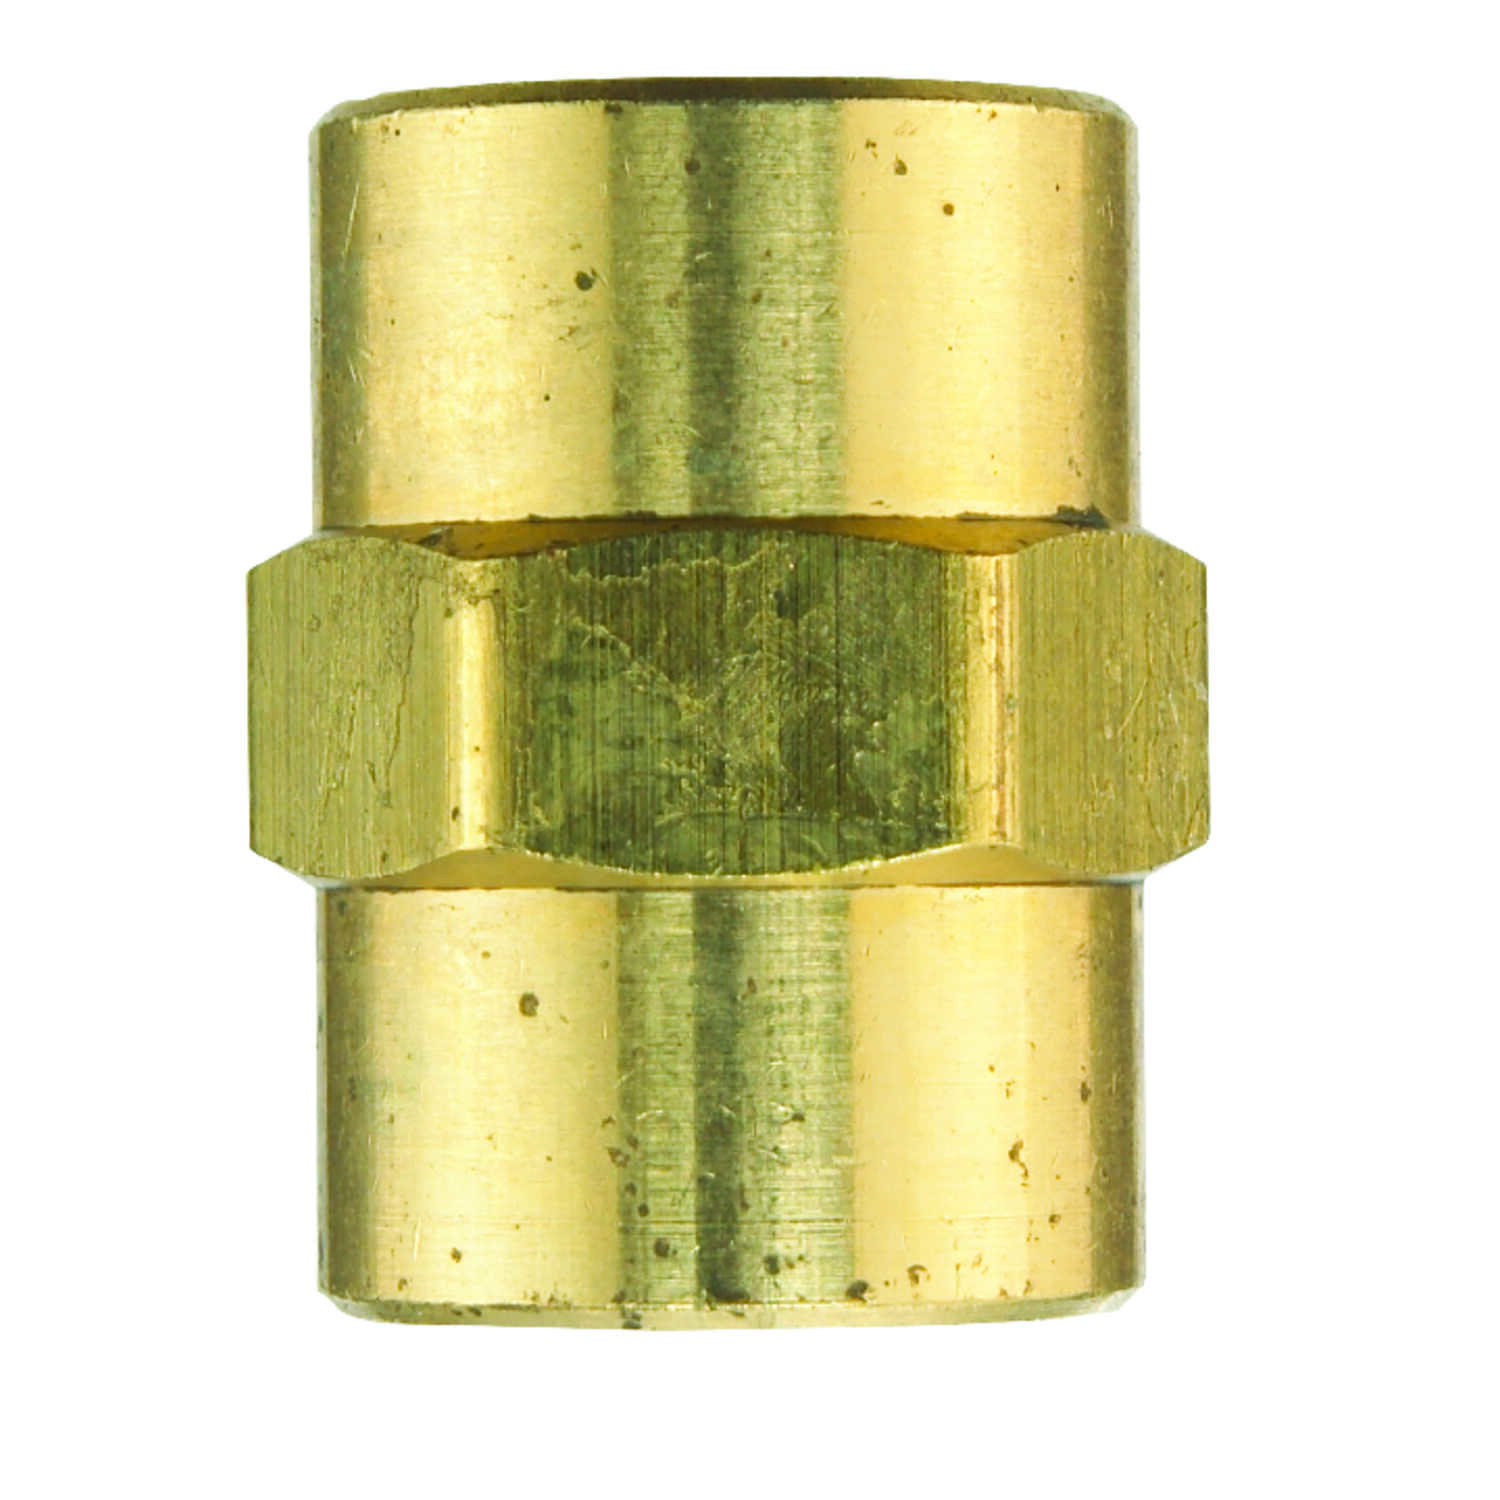 JMF  1/4 in. Dia. x 1/4 in. Dia. FPT To FPT  Yellow Brass  Coupling